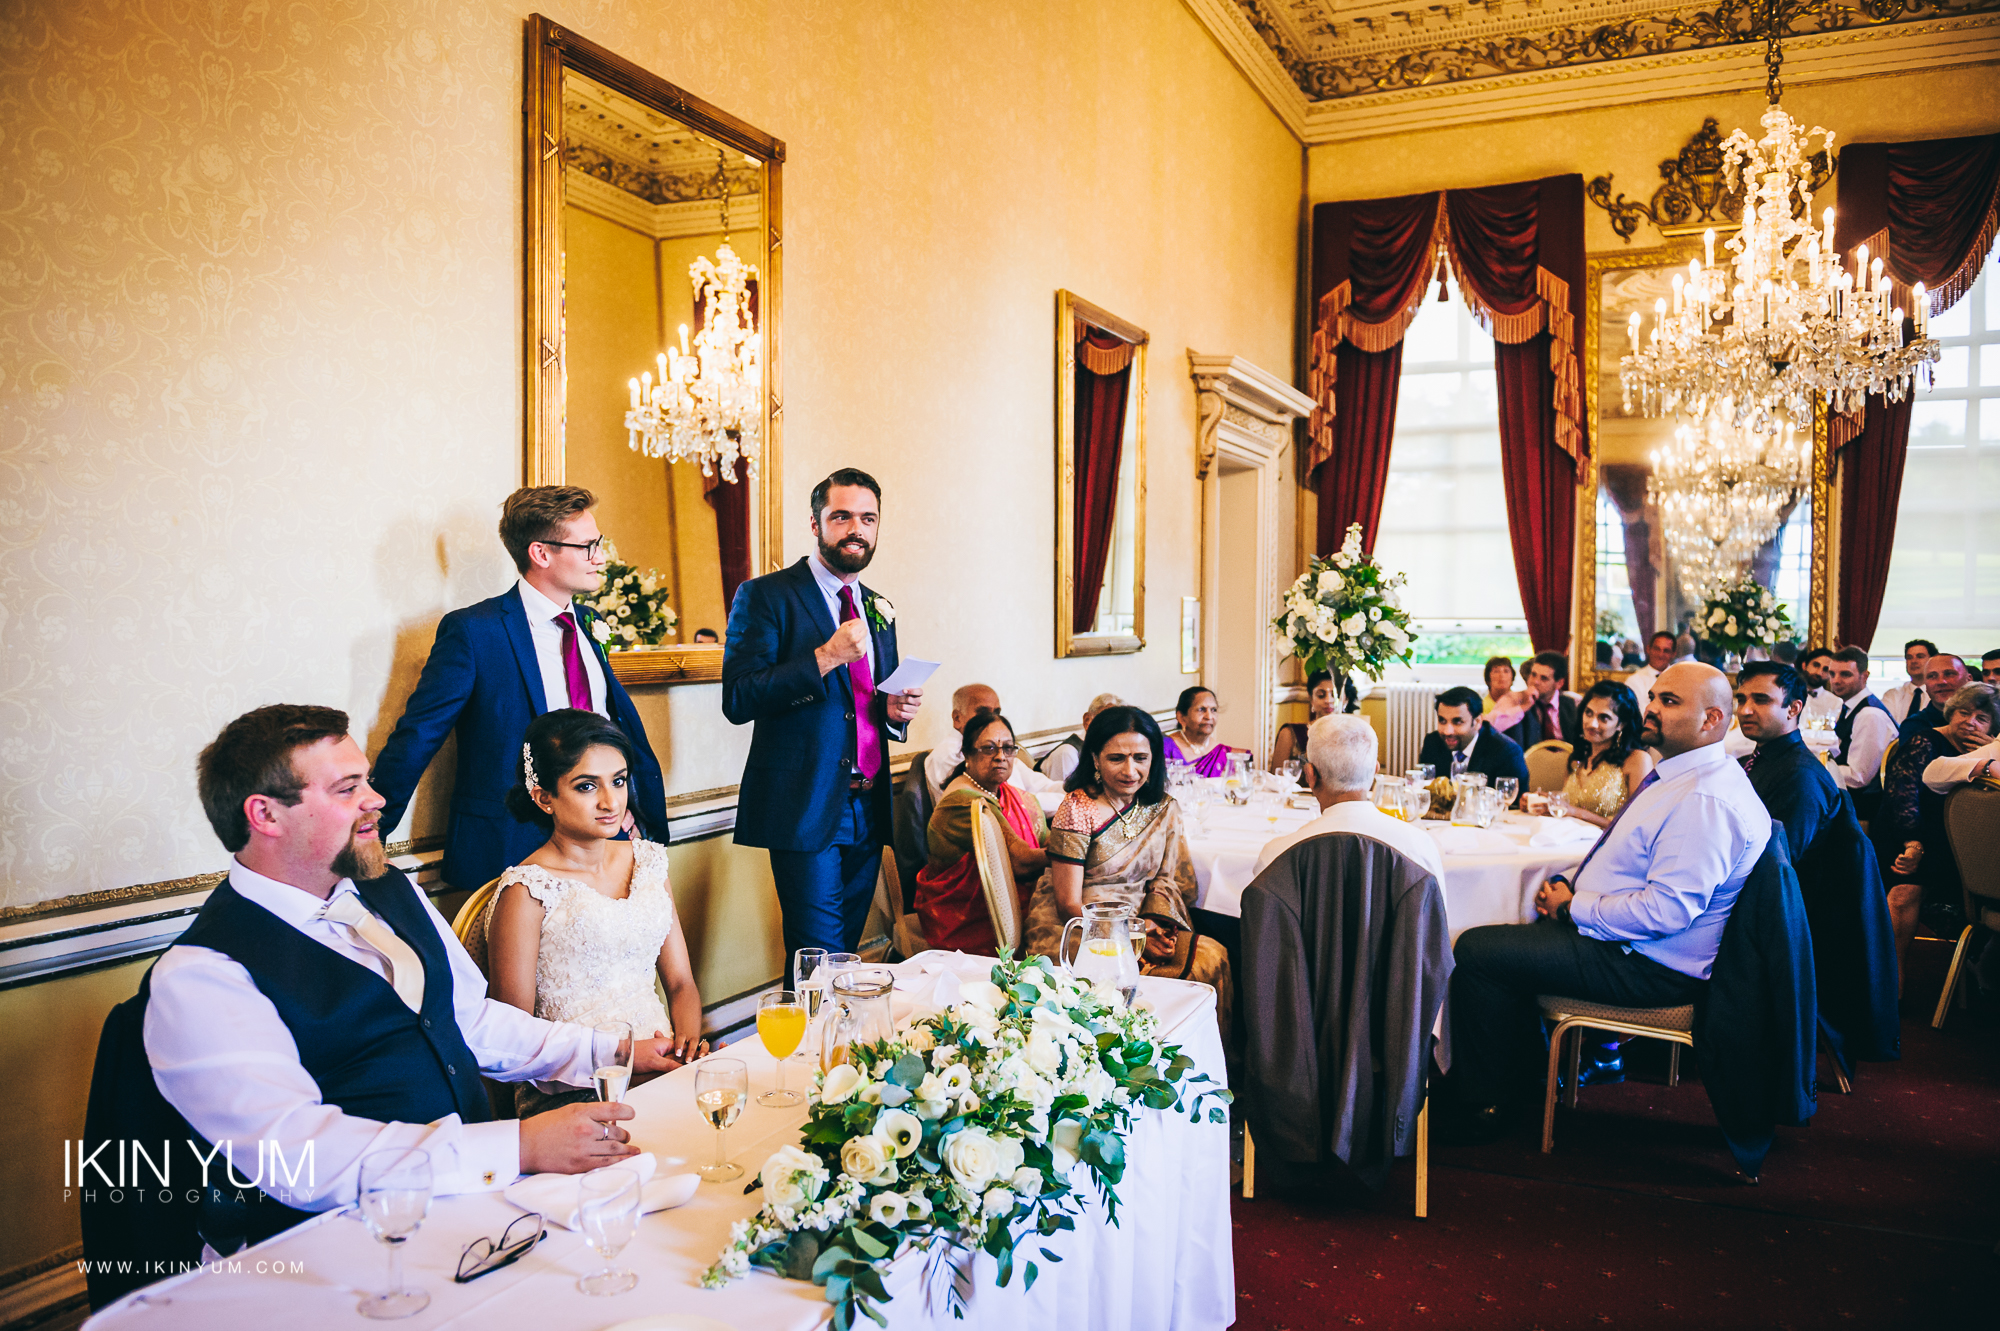 Moor Park Golf Club - Wedding- Ikin Yum Photography-135.jpg